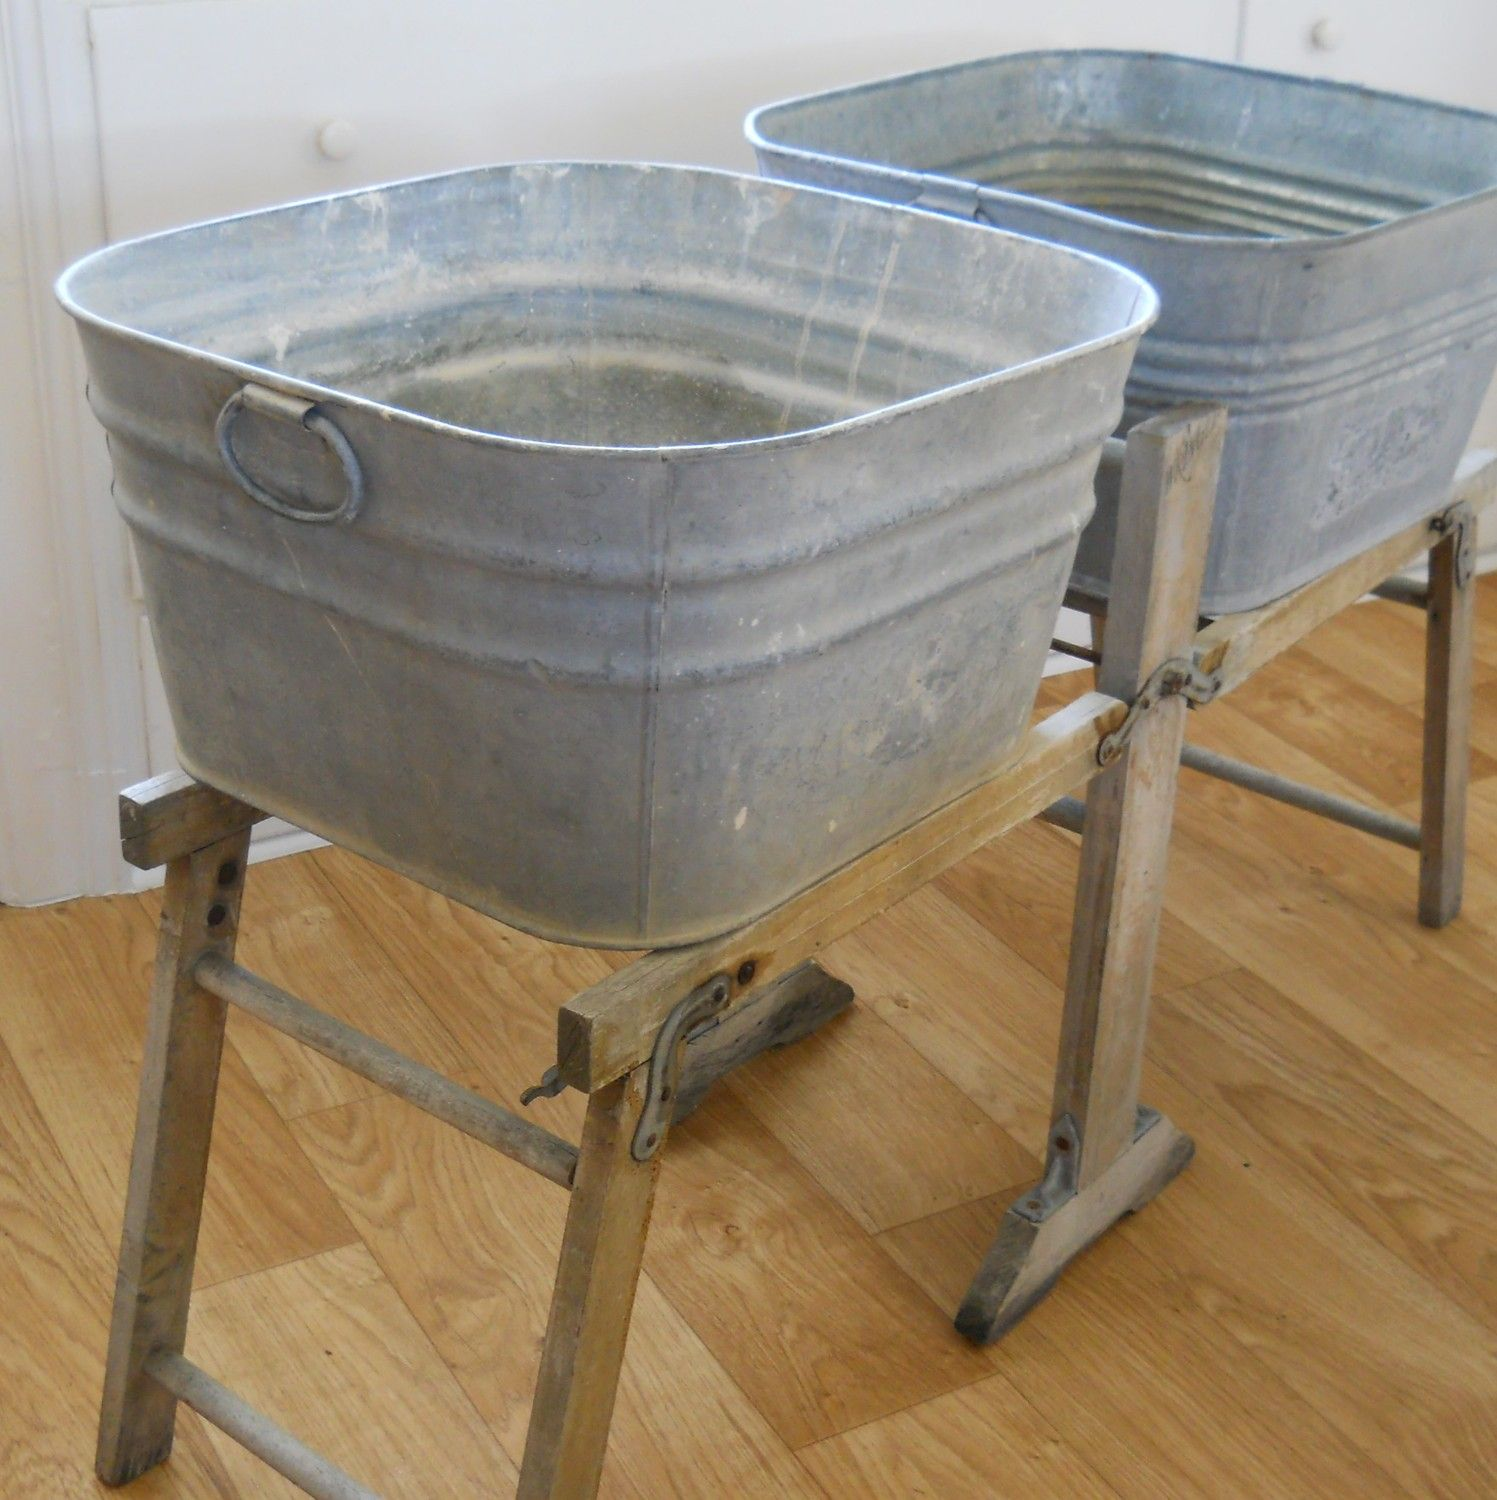 Old Galvanized Wash Tub Repurposed Into A Kitchen Island Description From Pinterest Com I Searched For This On Bi Galvanized Wash Tub Wash Tubs Tubs For Sale